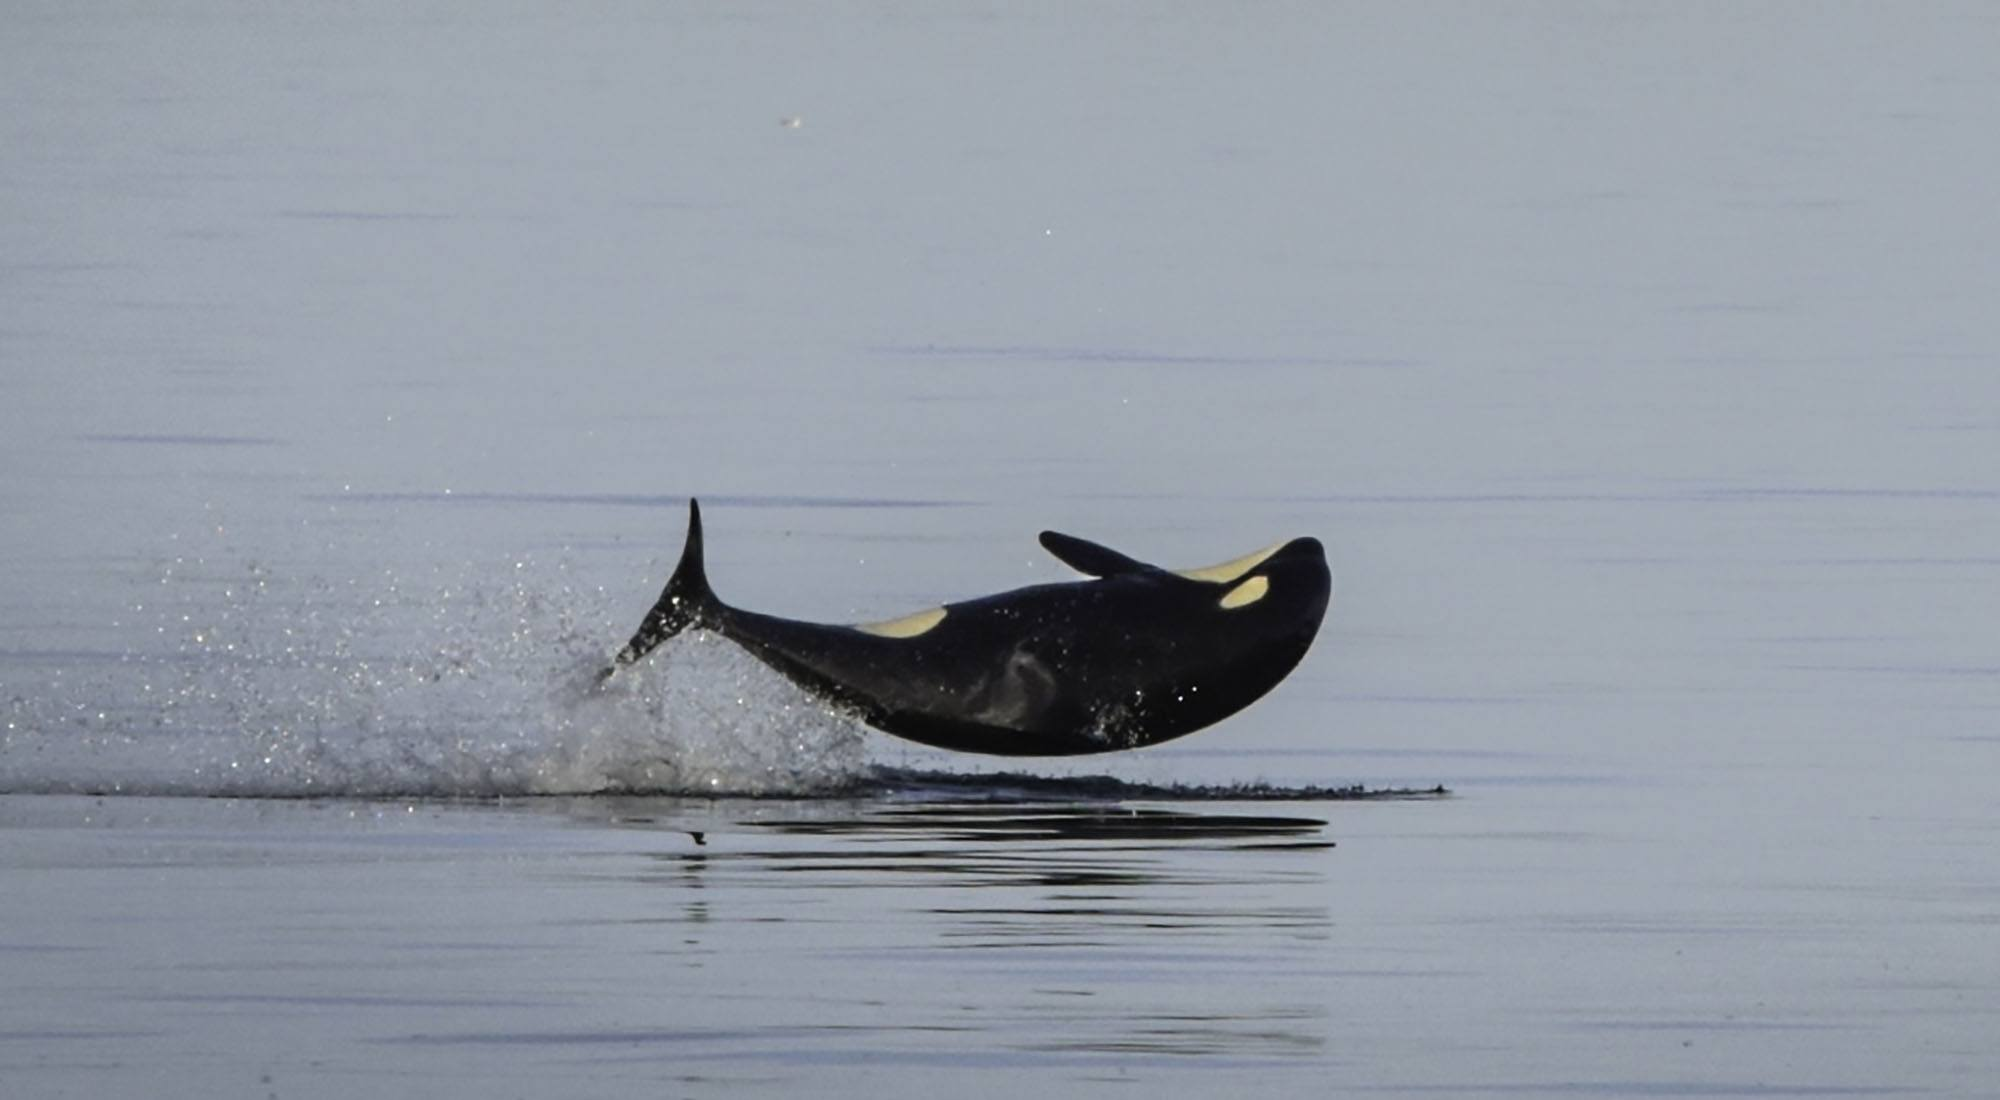 Orca calf Sonic (J52). Photo by Naturalist/Capt Heather MacIntyre, Maya's Legacy Whale Watching, Friday Harbor, WA.